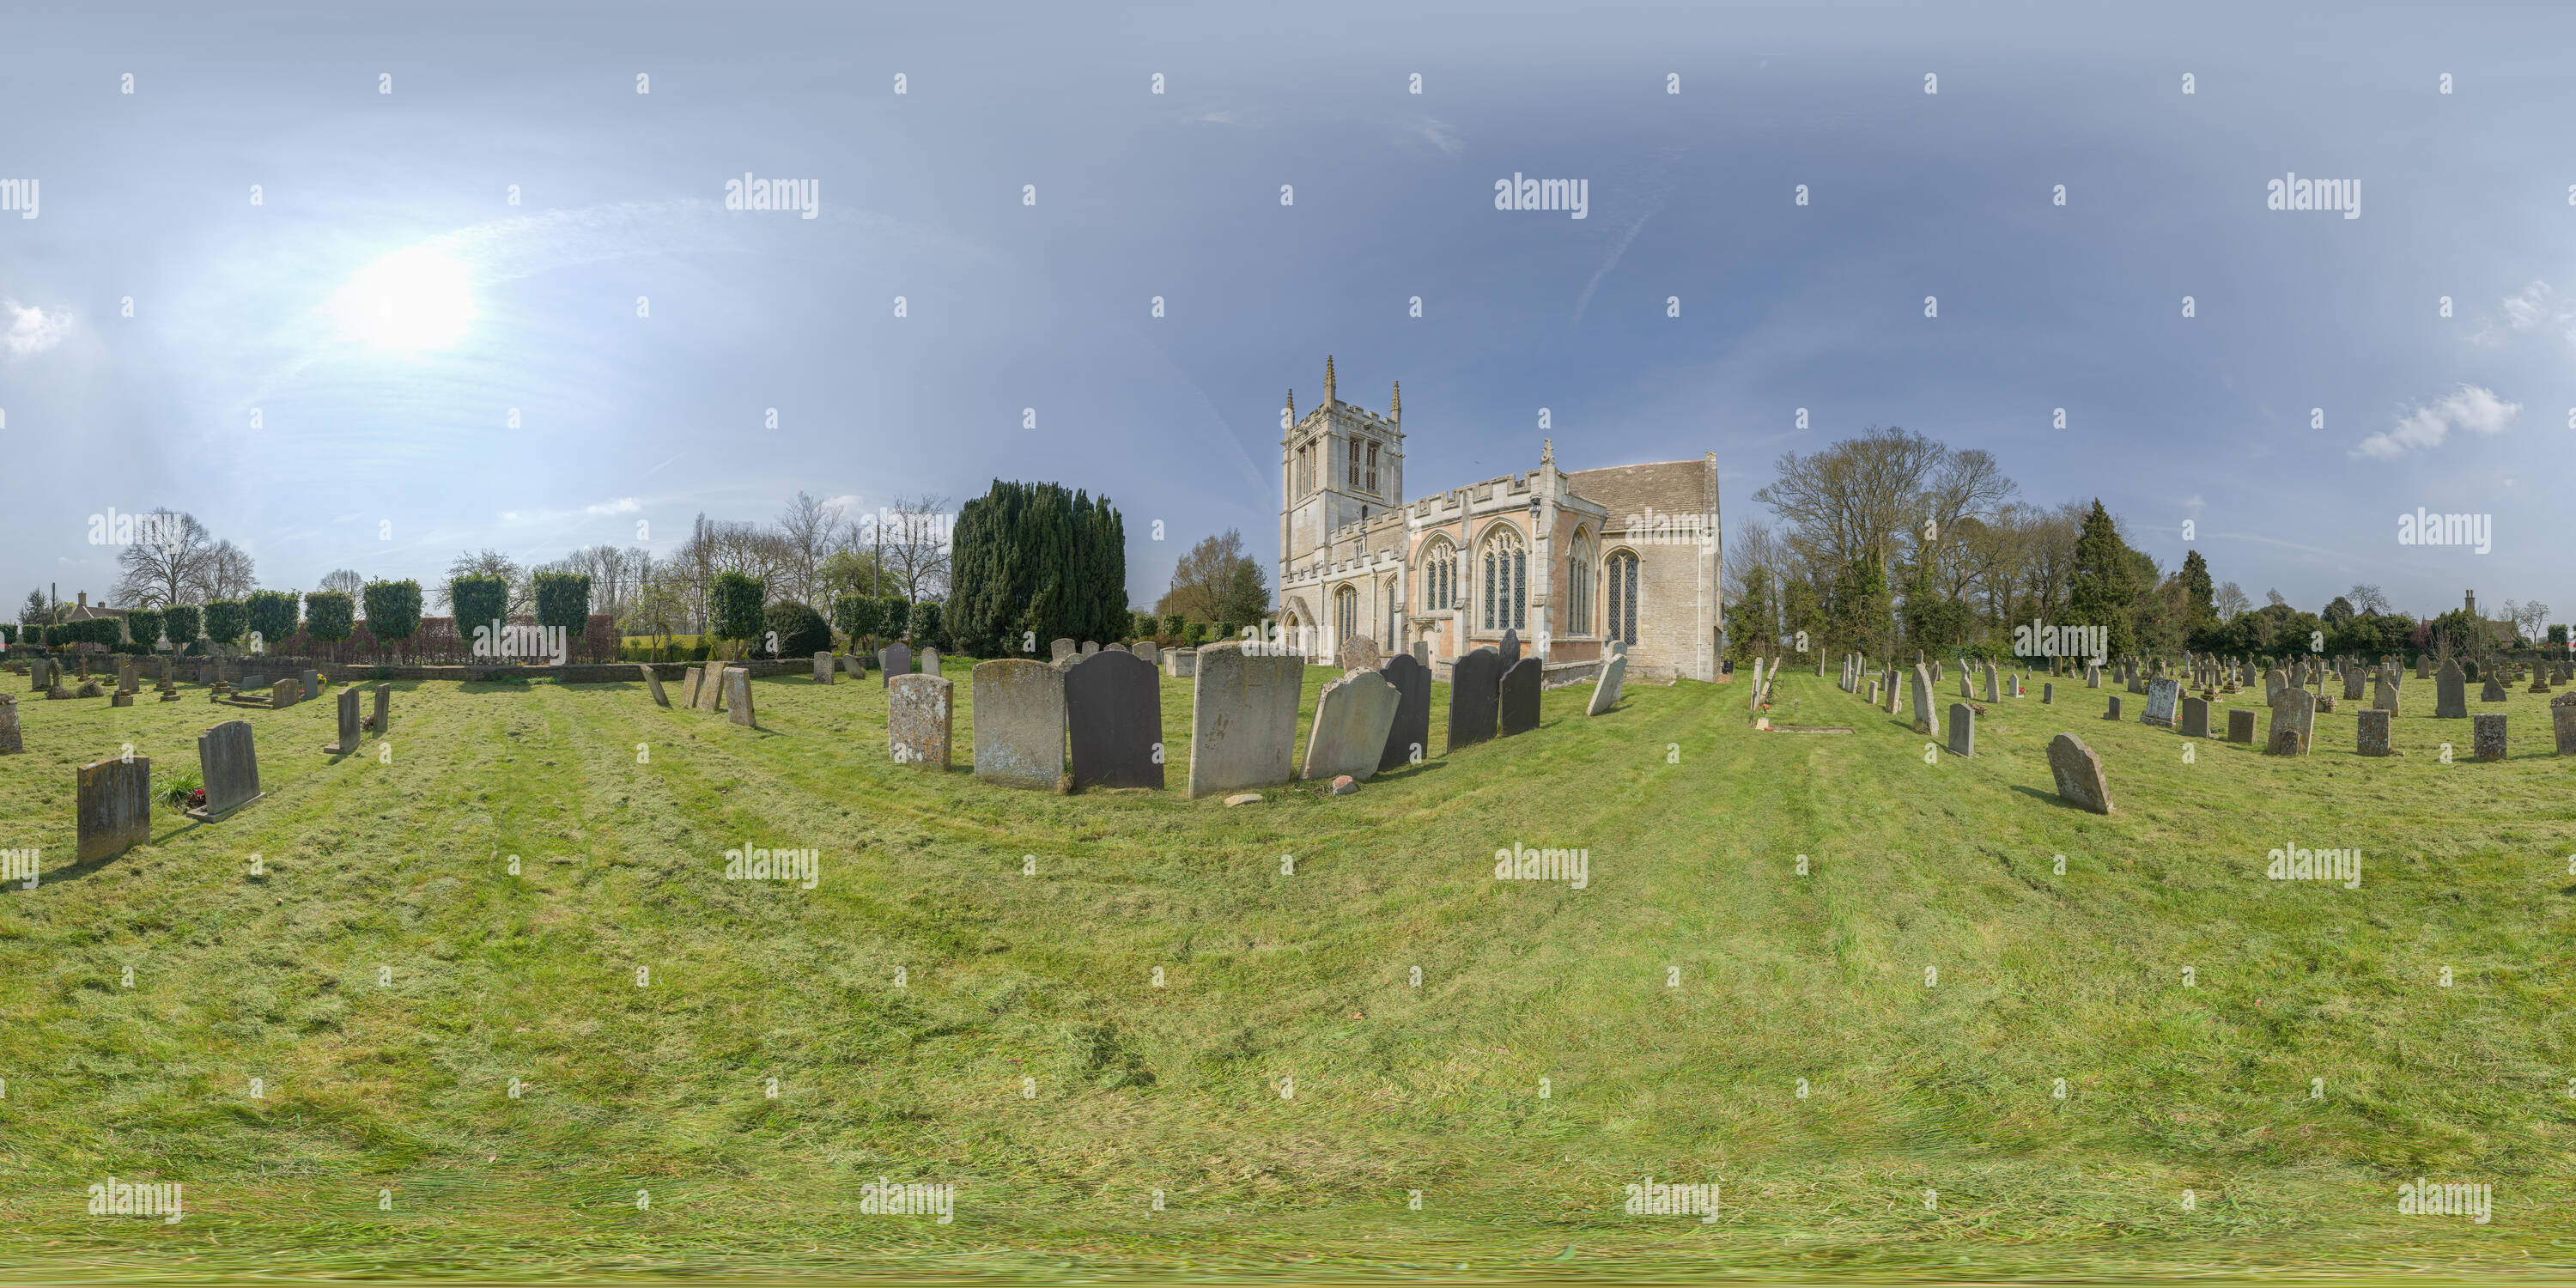 360 degree panoramic view of Started in the thirteenth century, the village medieval church at Aldwincle, now redundant and bare, was where the poet John Dryden was baptised.